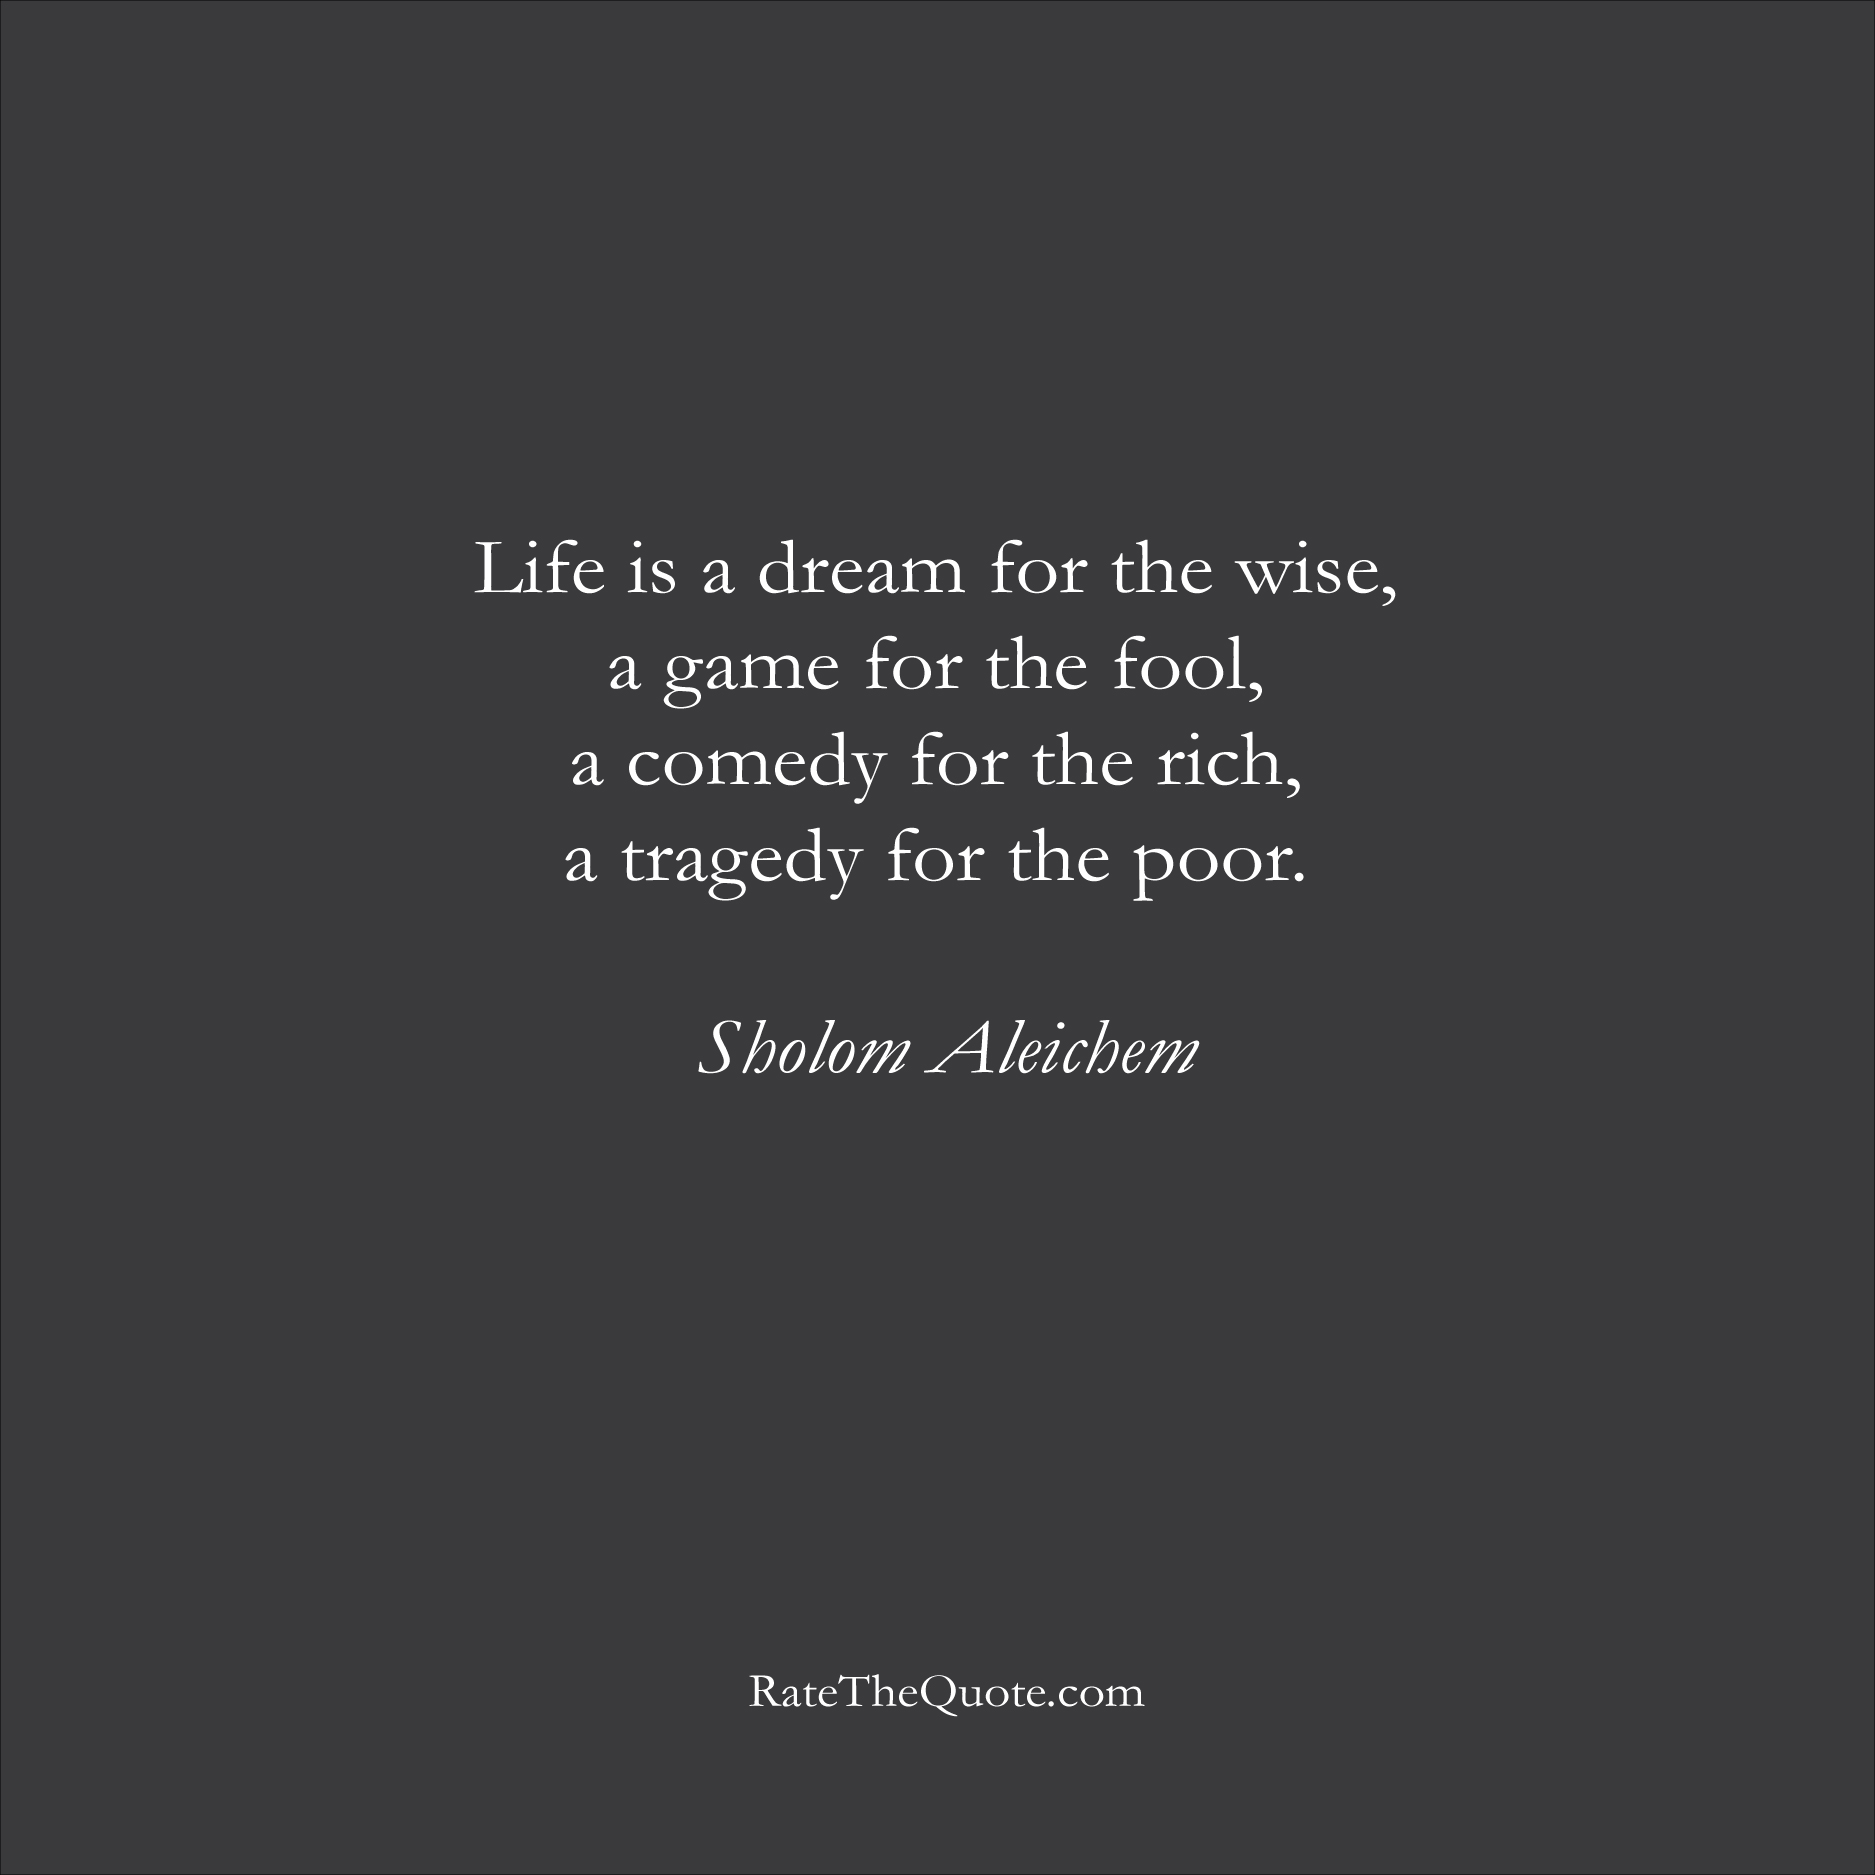 Life Quotes Life is a dream for the wise, a game for the fool, a comedy for the rich, a tragedy for the poor. Sholom Aleichem